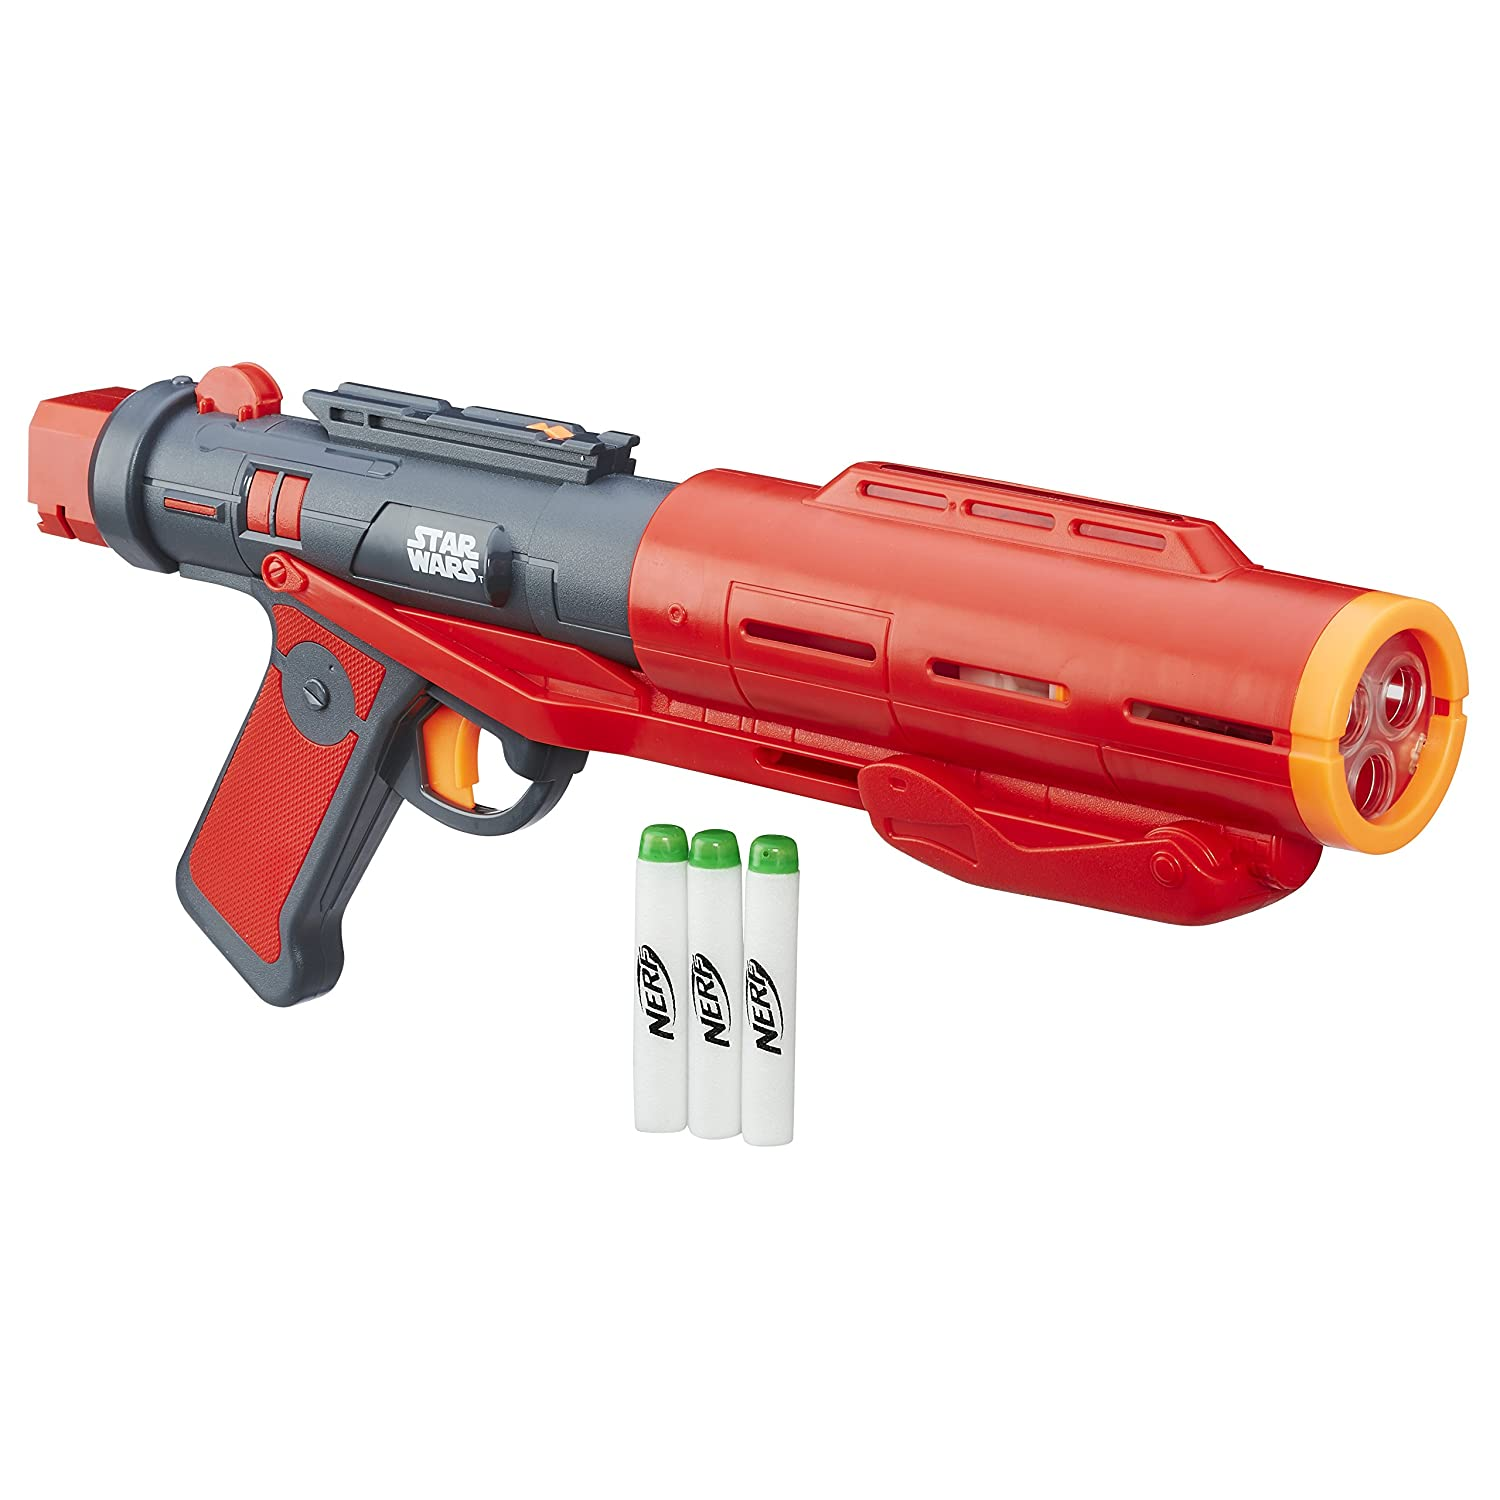 Hasbro Star Wars Rogue e Imperial Death Trooper Blaster Toy Blaster Amazon Toys & Games